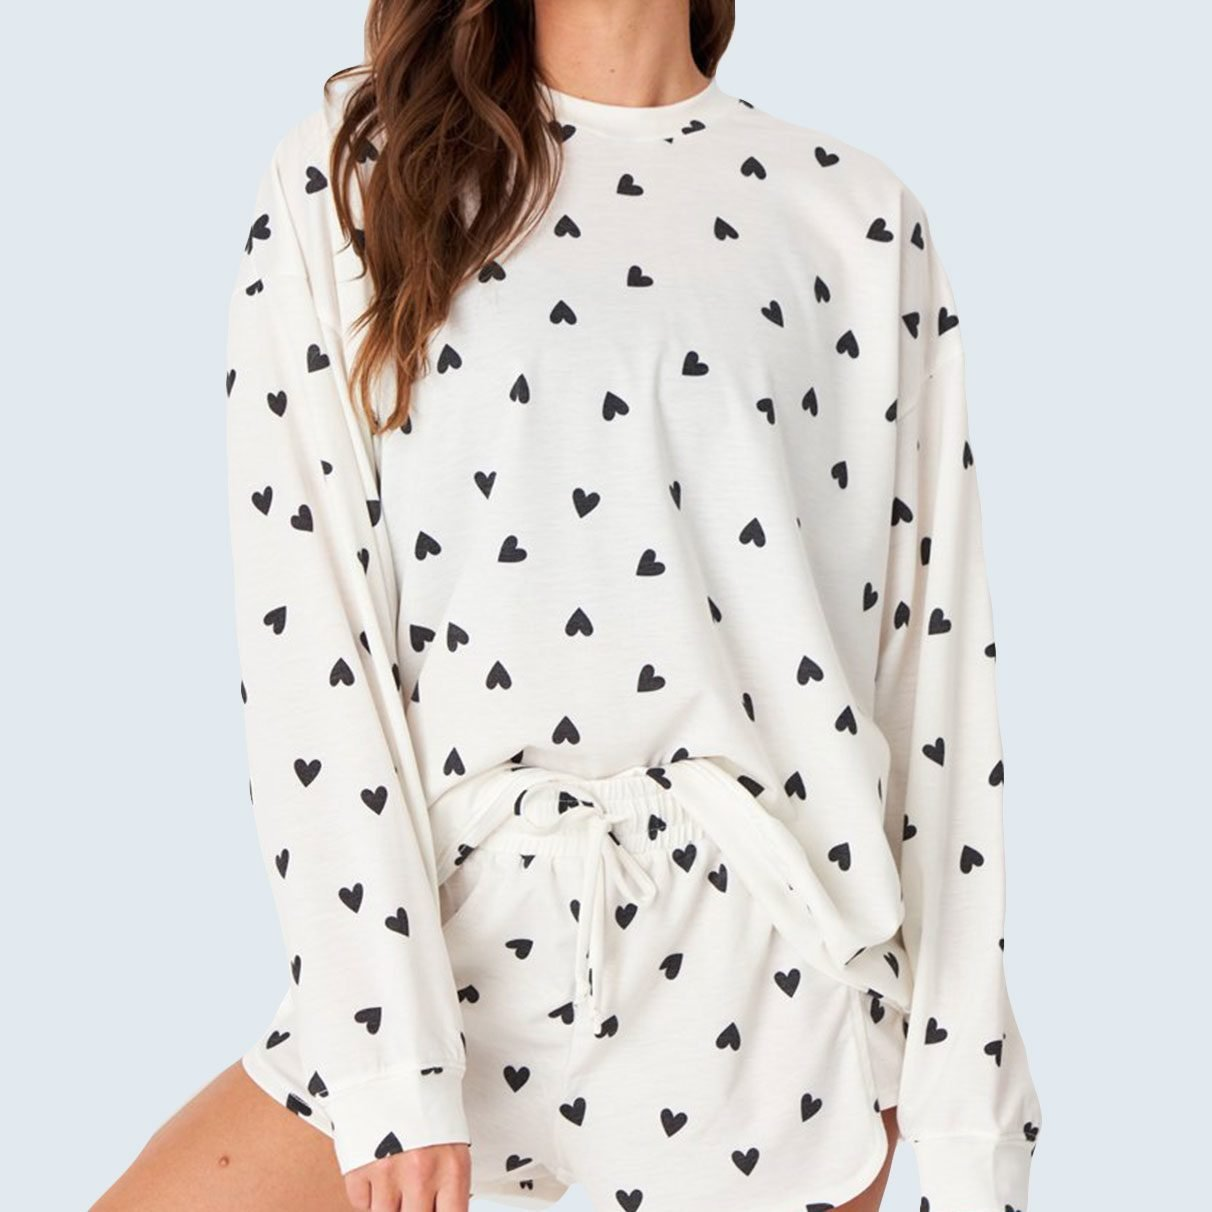 For lounging at home: Onzie Boyfriend Sweatshirt with Black Hearts